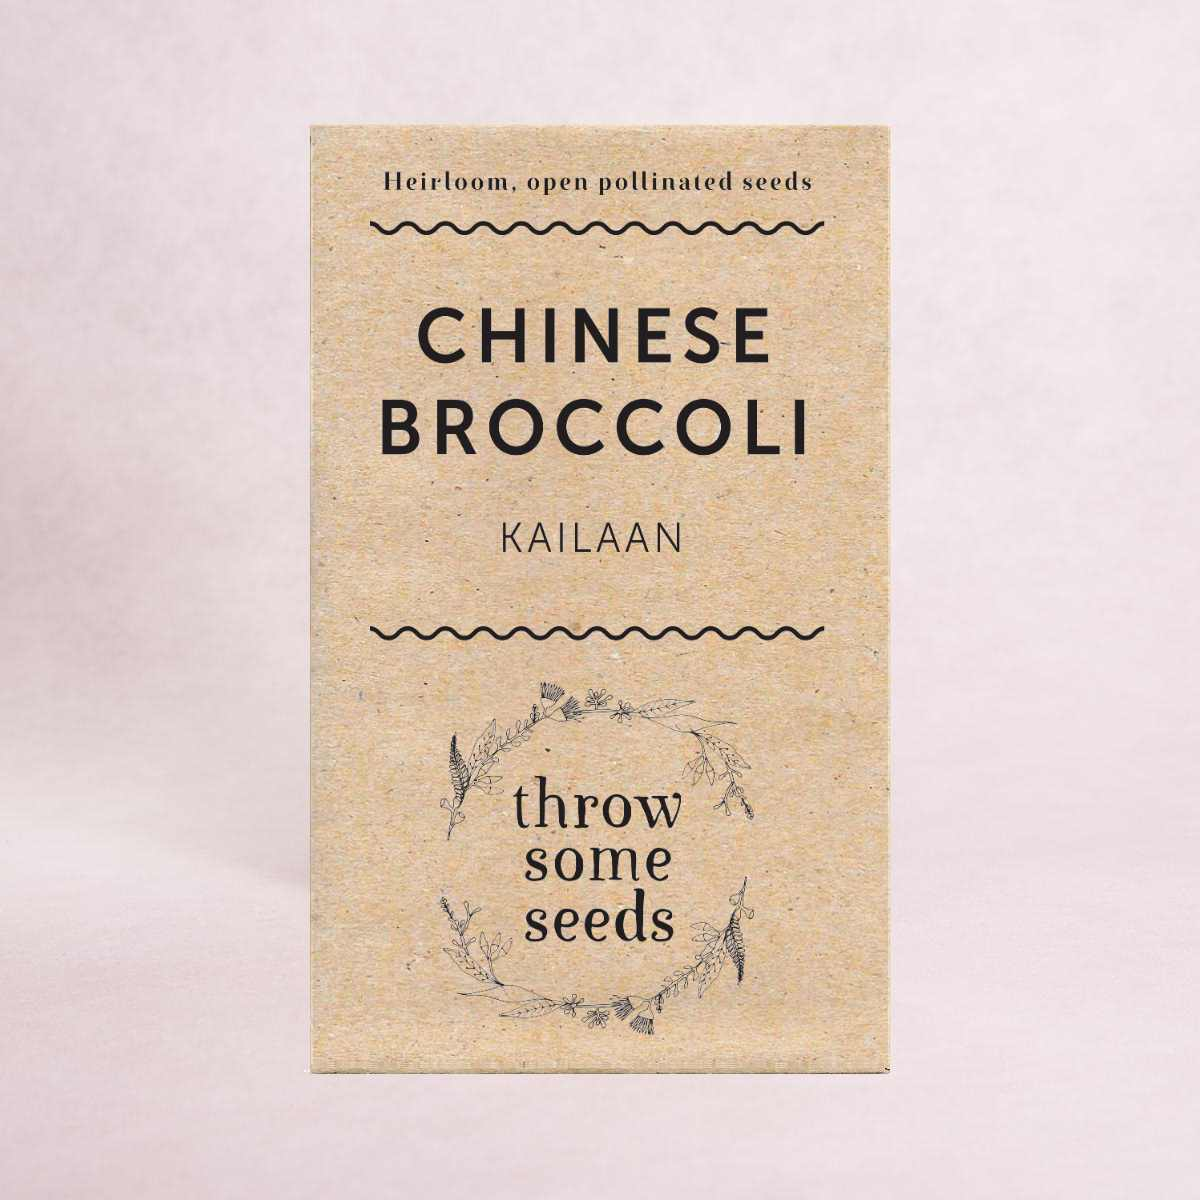 Chinese Broccoli (Kailaan) Seeds - Seeds - Throw Some Seeds - Australian gardening gifts and eco products online!